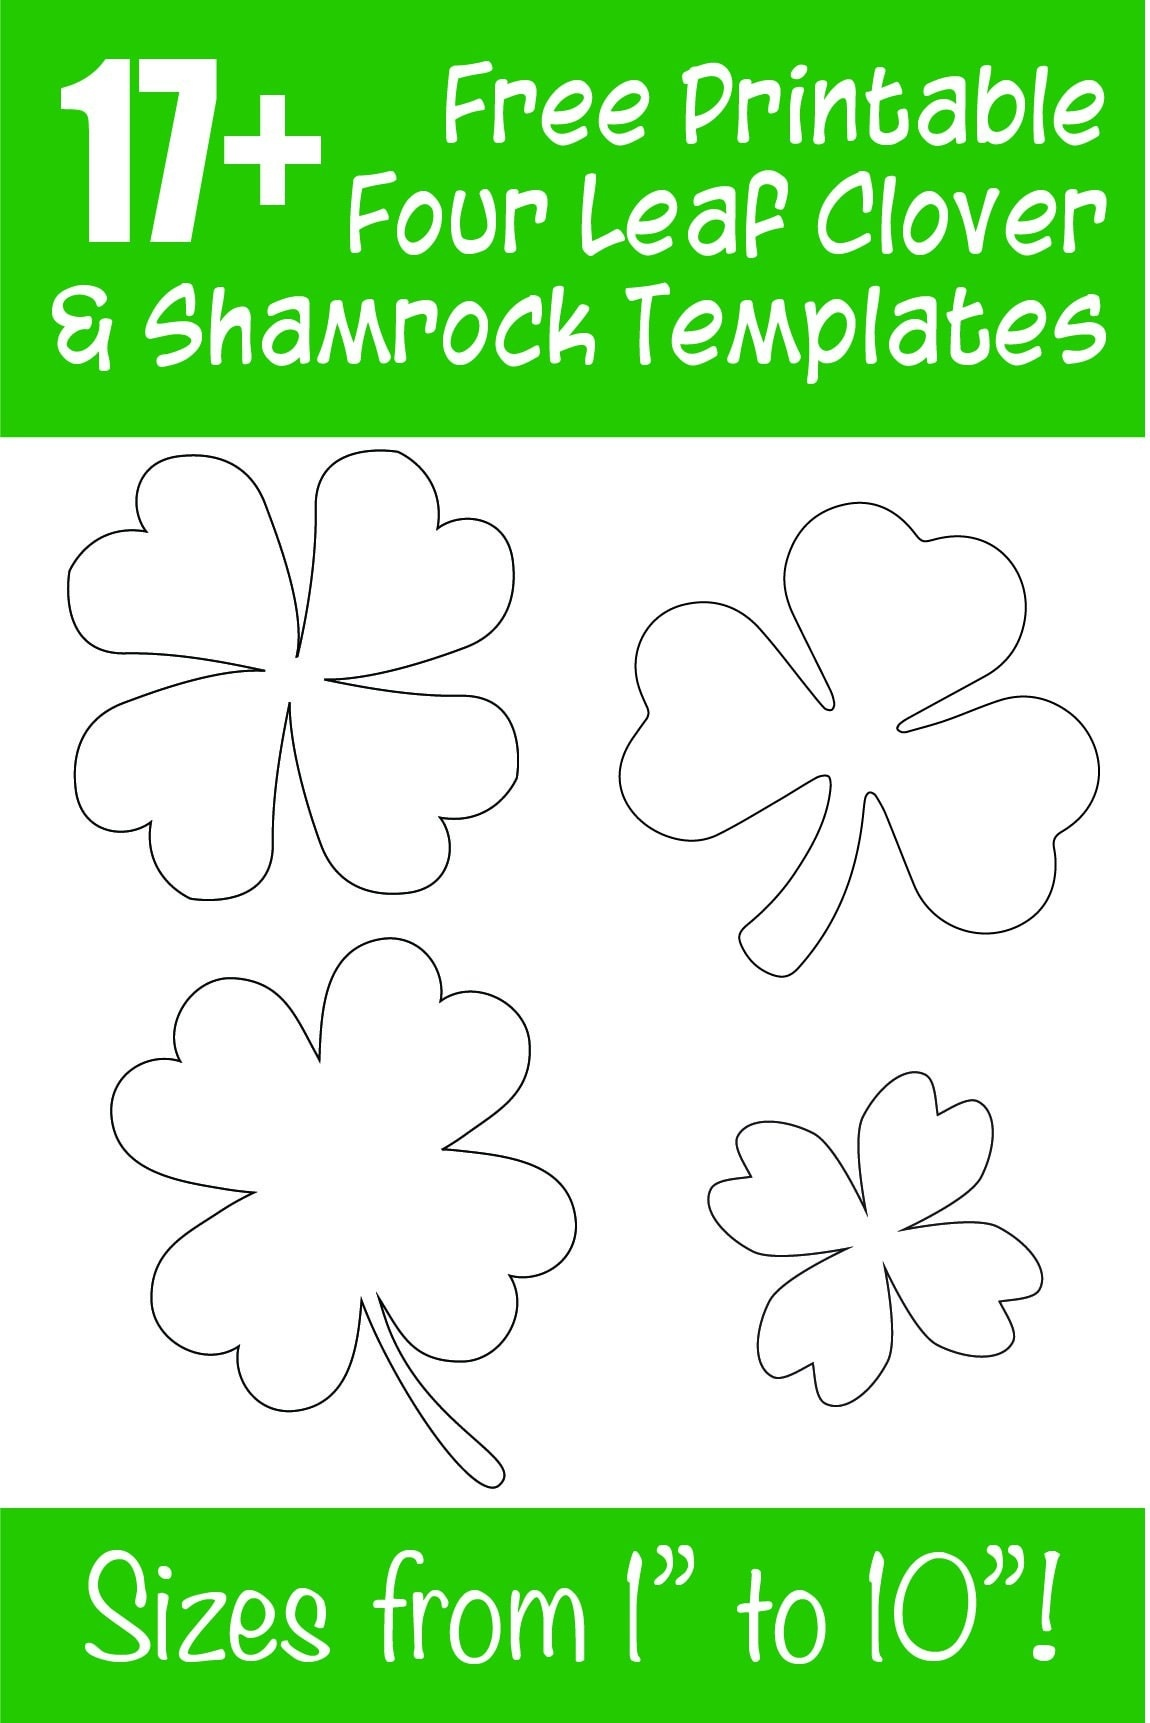 17+ Free Printable Four Leaf Clover & Shamrock Templates - The - Free Printable Shamrock Cutouts